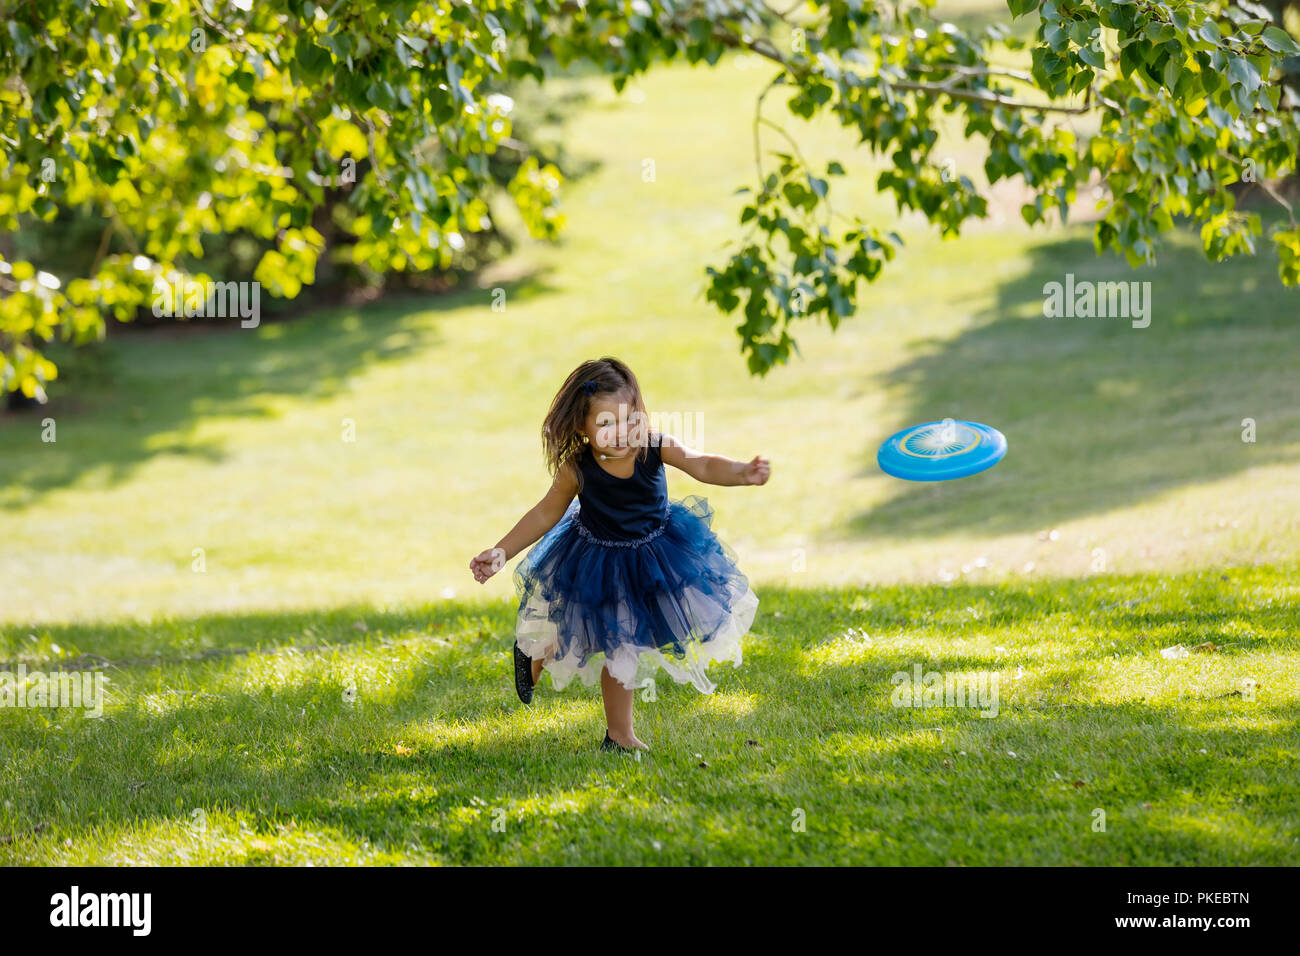 A young girl in a party dress chasing a disc toy that was thrown to her in a park on warm fall afternoon during a family outing - Stock Image